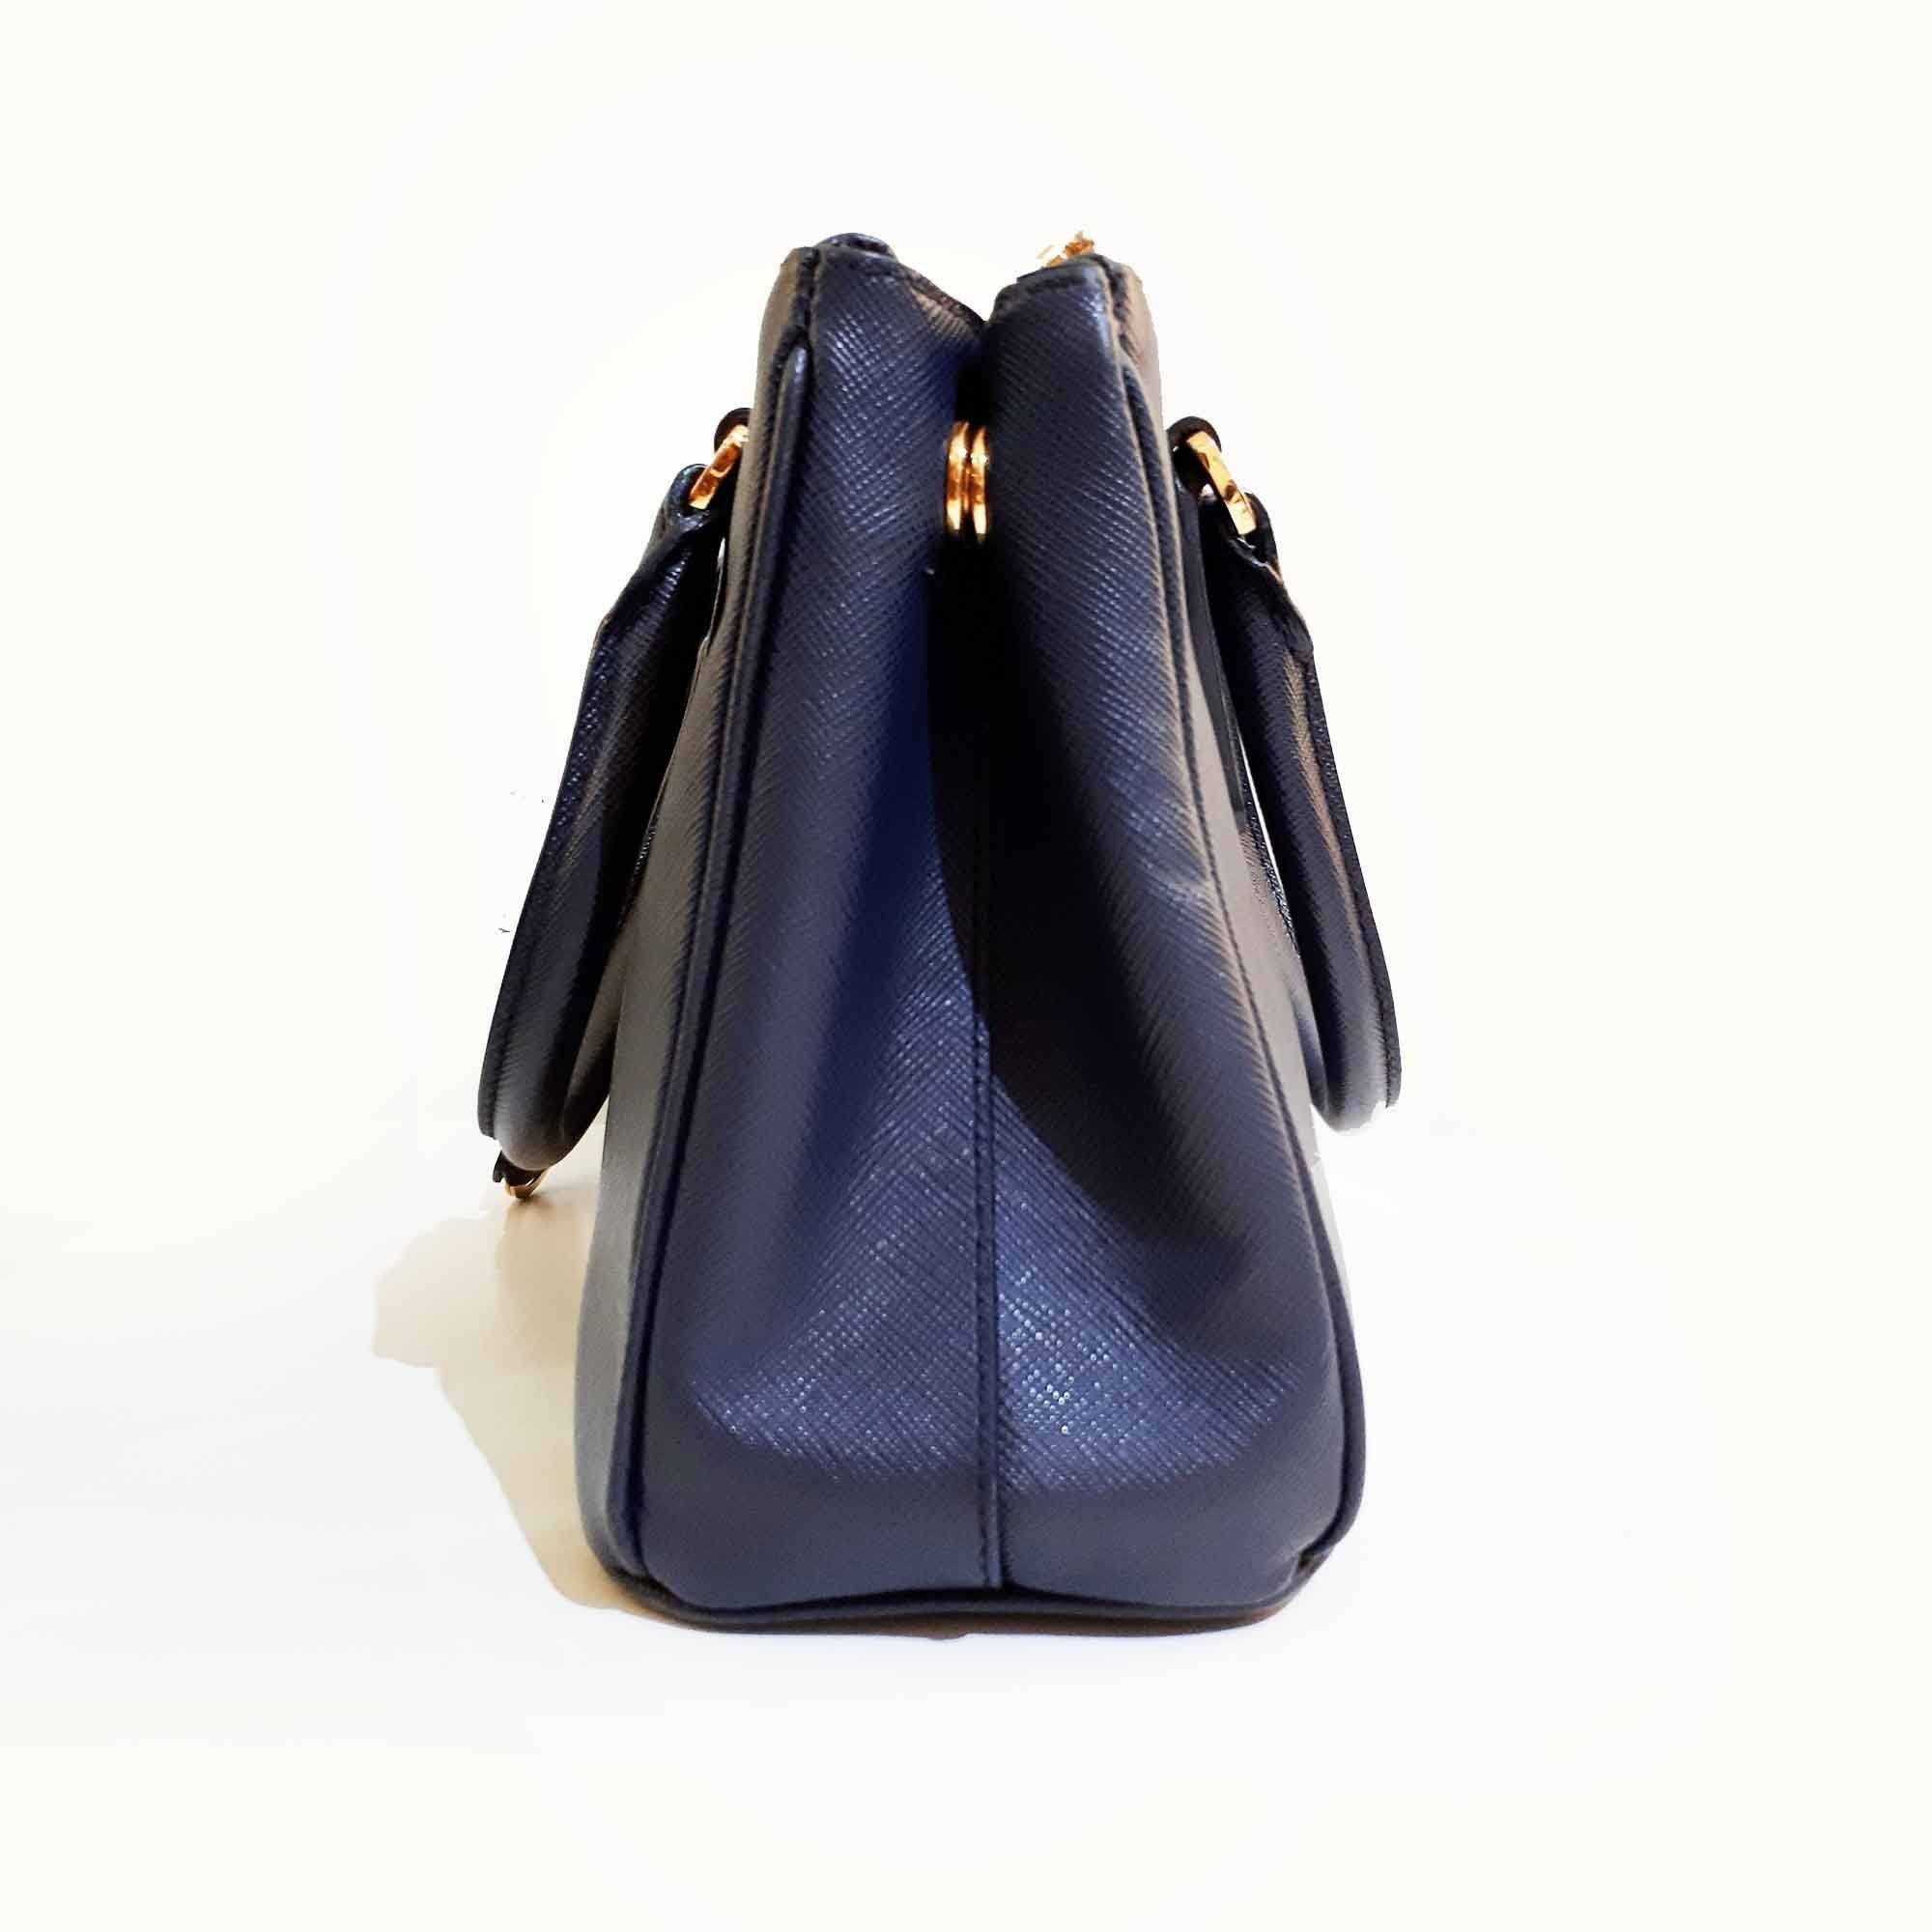 Prada Blue Saffiano Lux Leather Mini Double Zip Tote